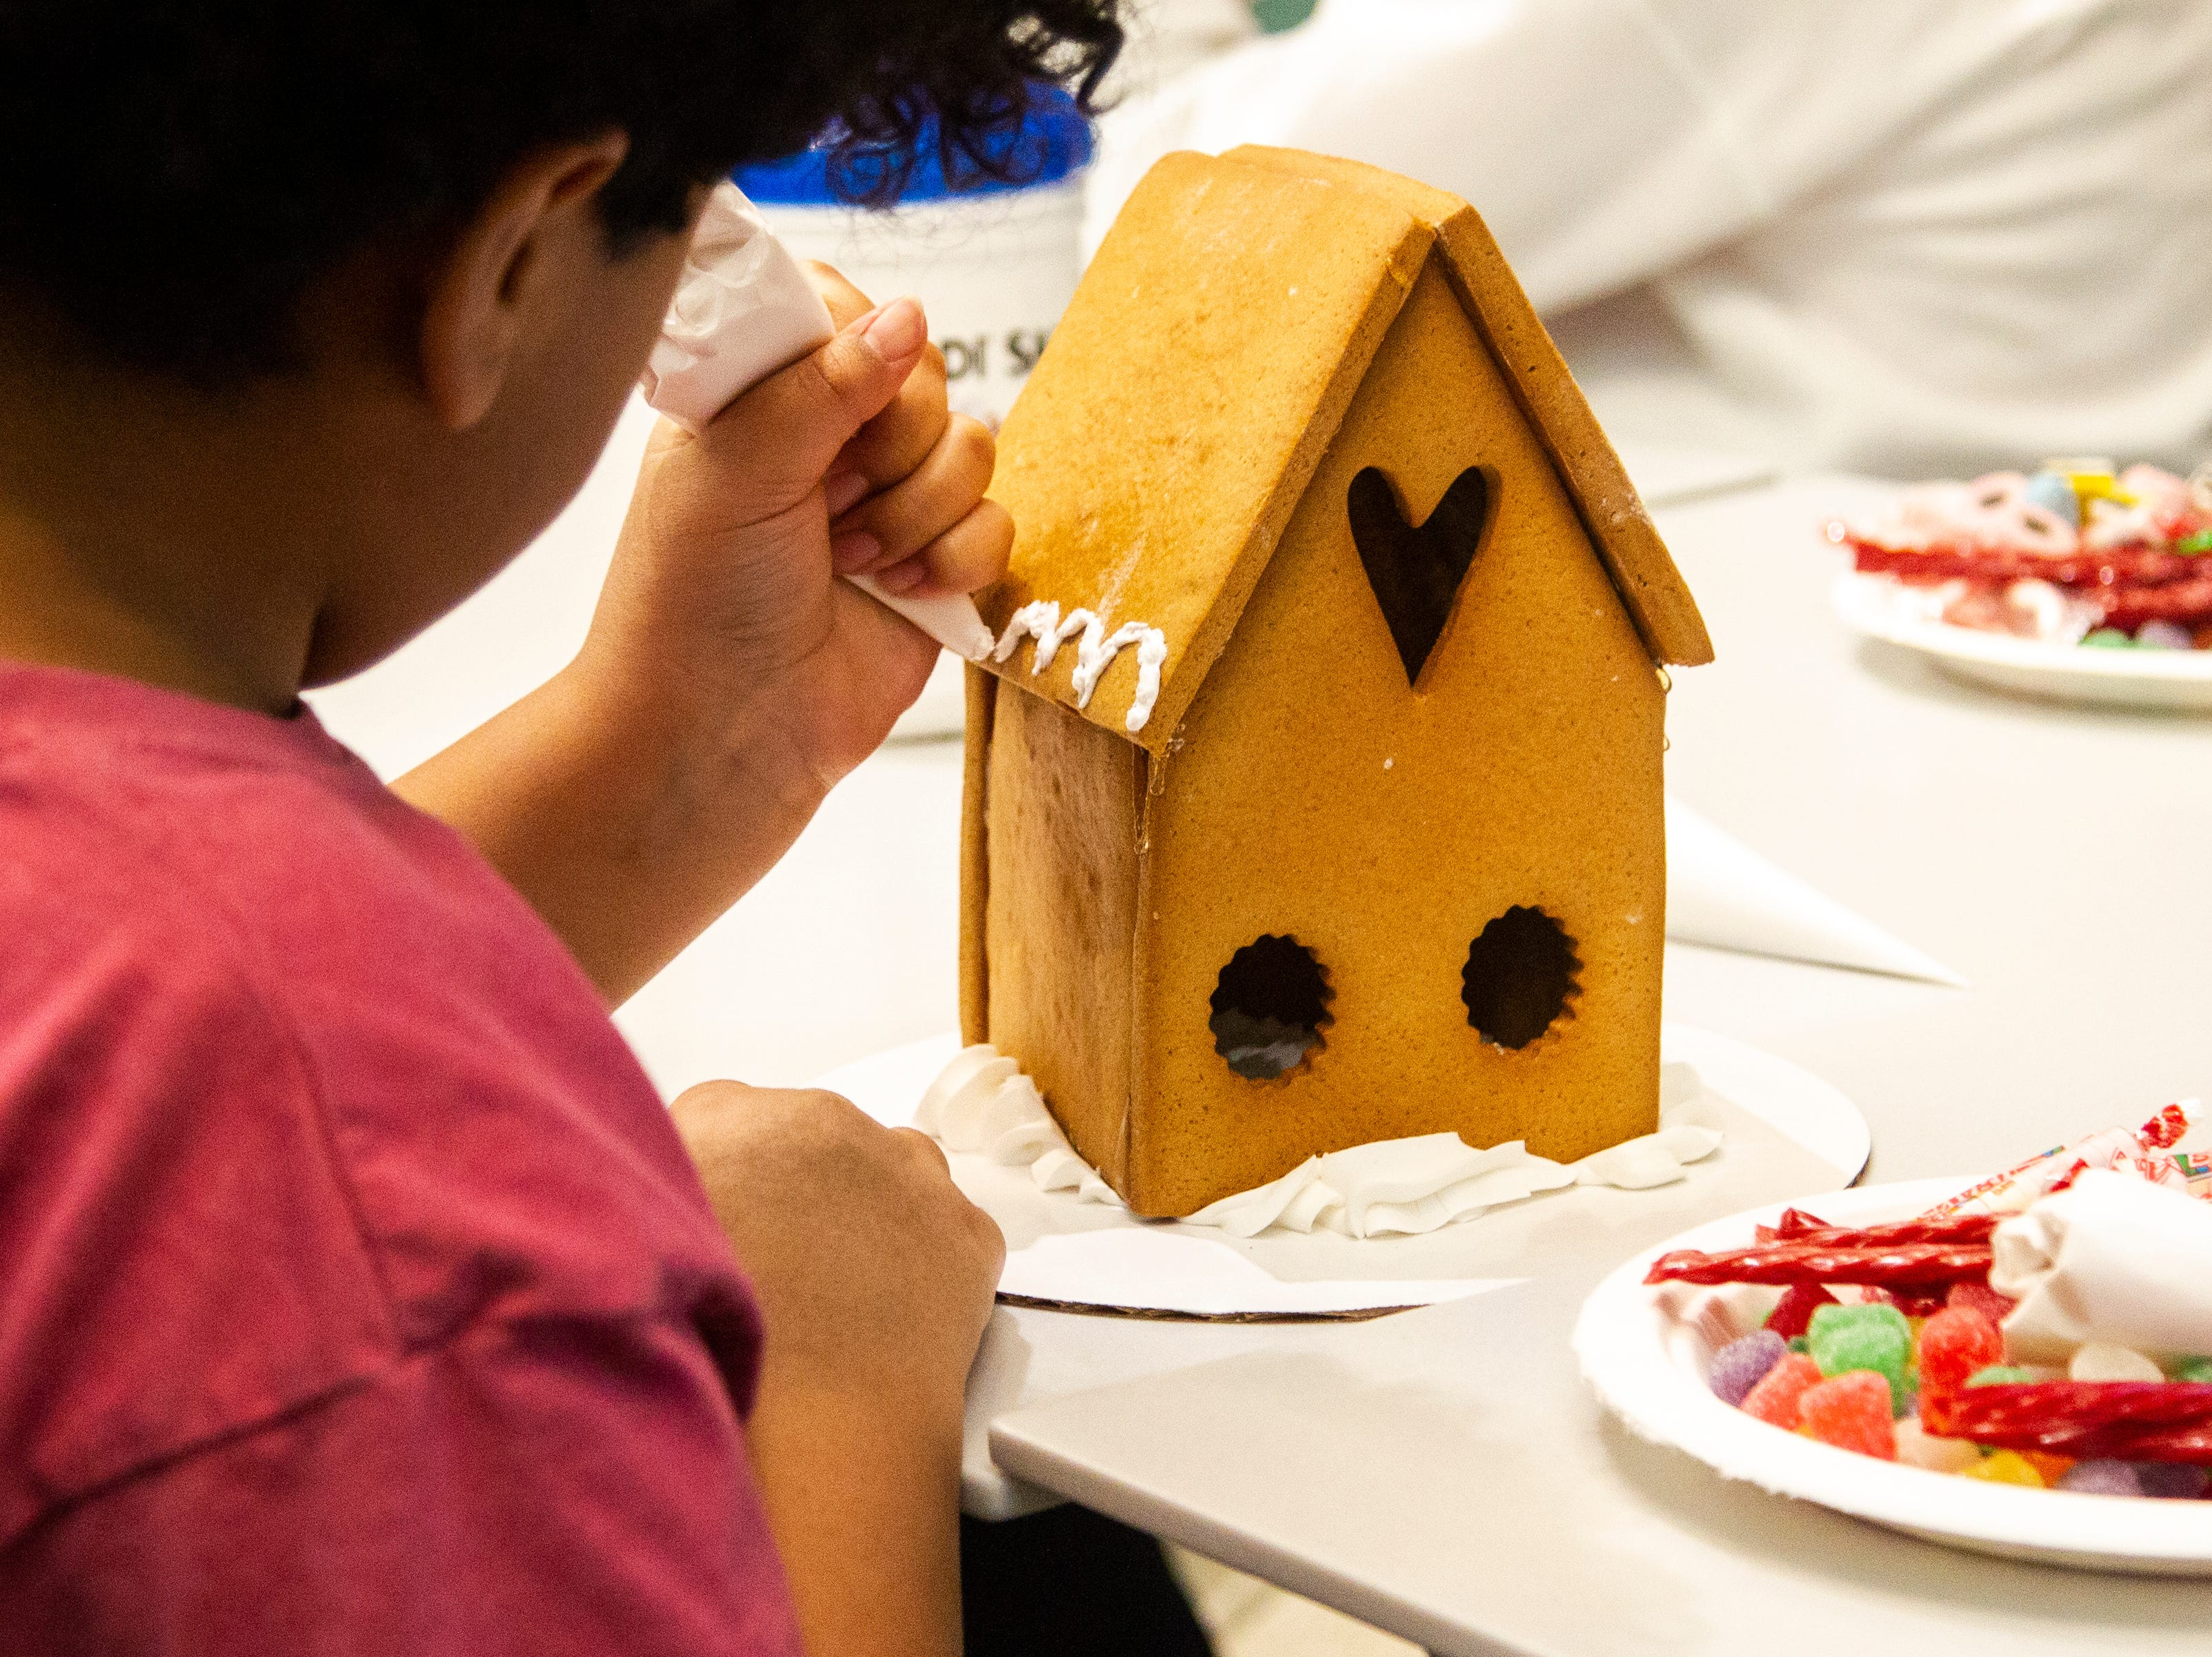 Sedalia Cason picks out decorations for her gingerbread house during an event on Tuesday, Dec. 18, 2018, at the Stead Family Children's Hospital in Iowa City.